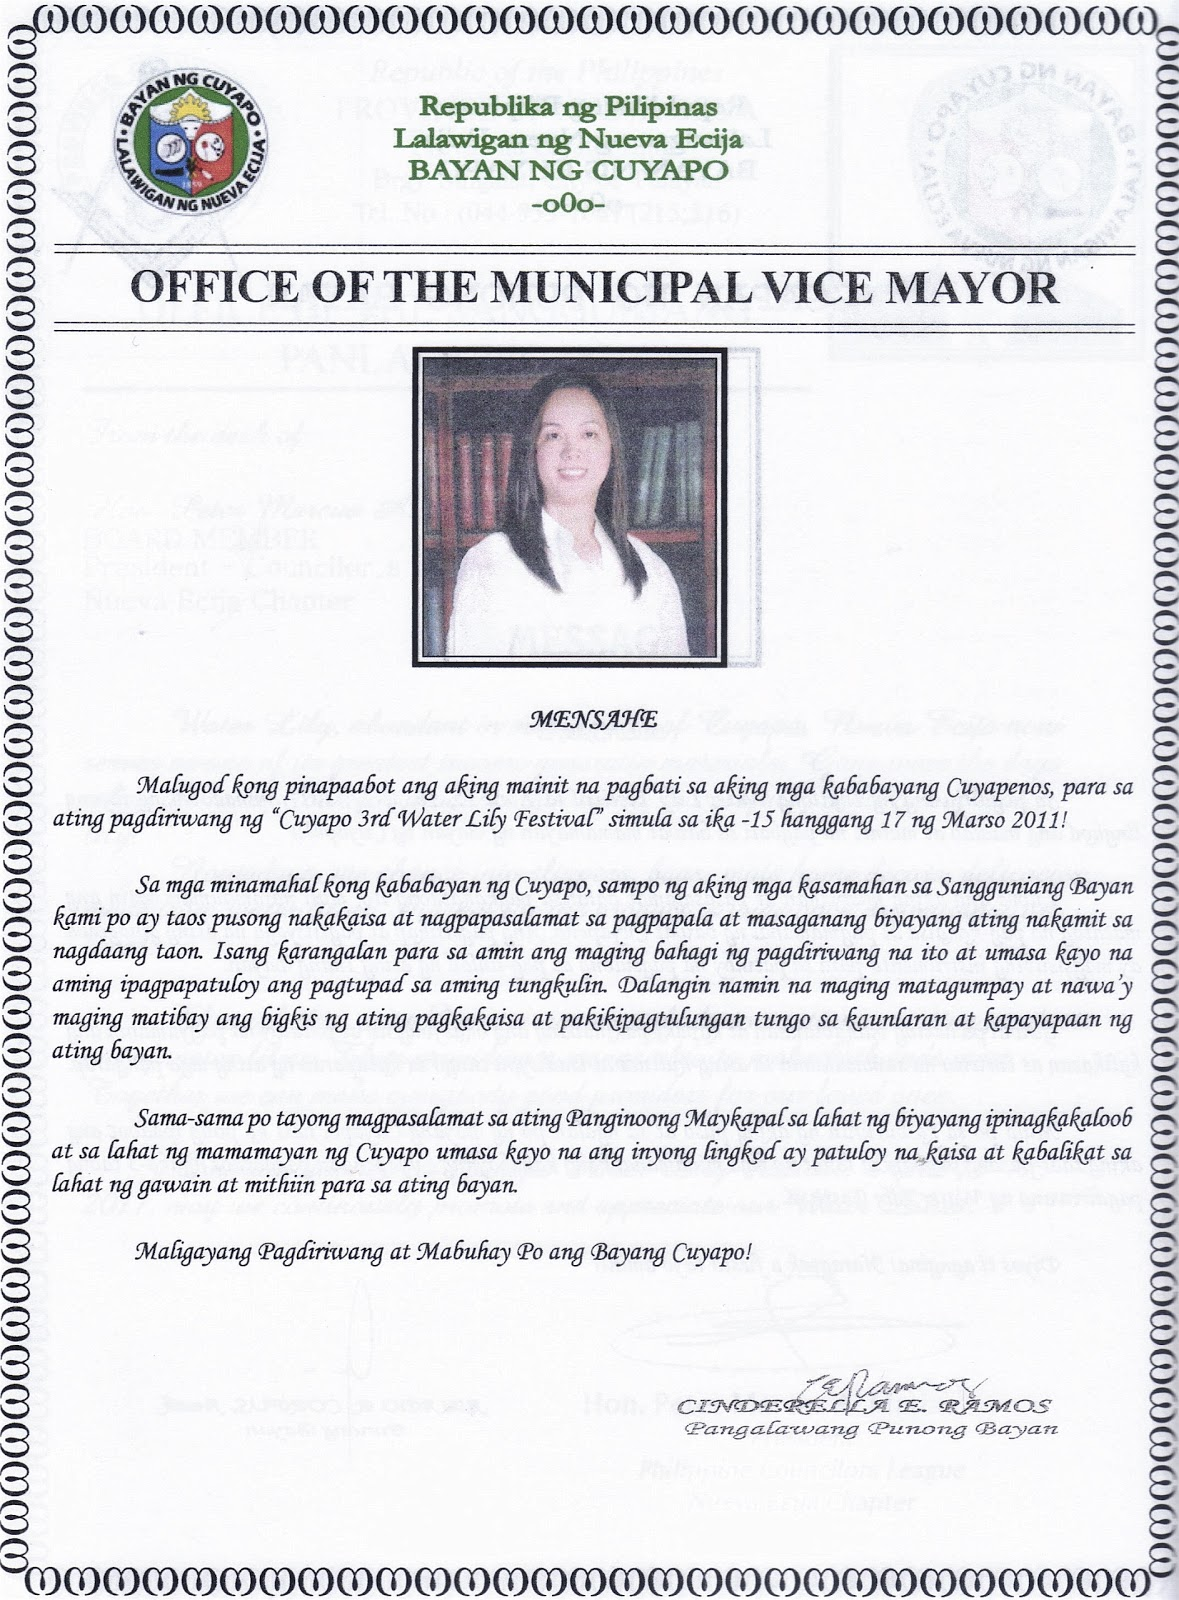 Cuyapo cuyapo town fiesta 2011 vice mayors message cuyapo town fiesta 2011 vice mayors message m4hsunfo